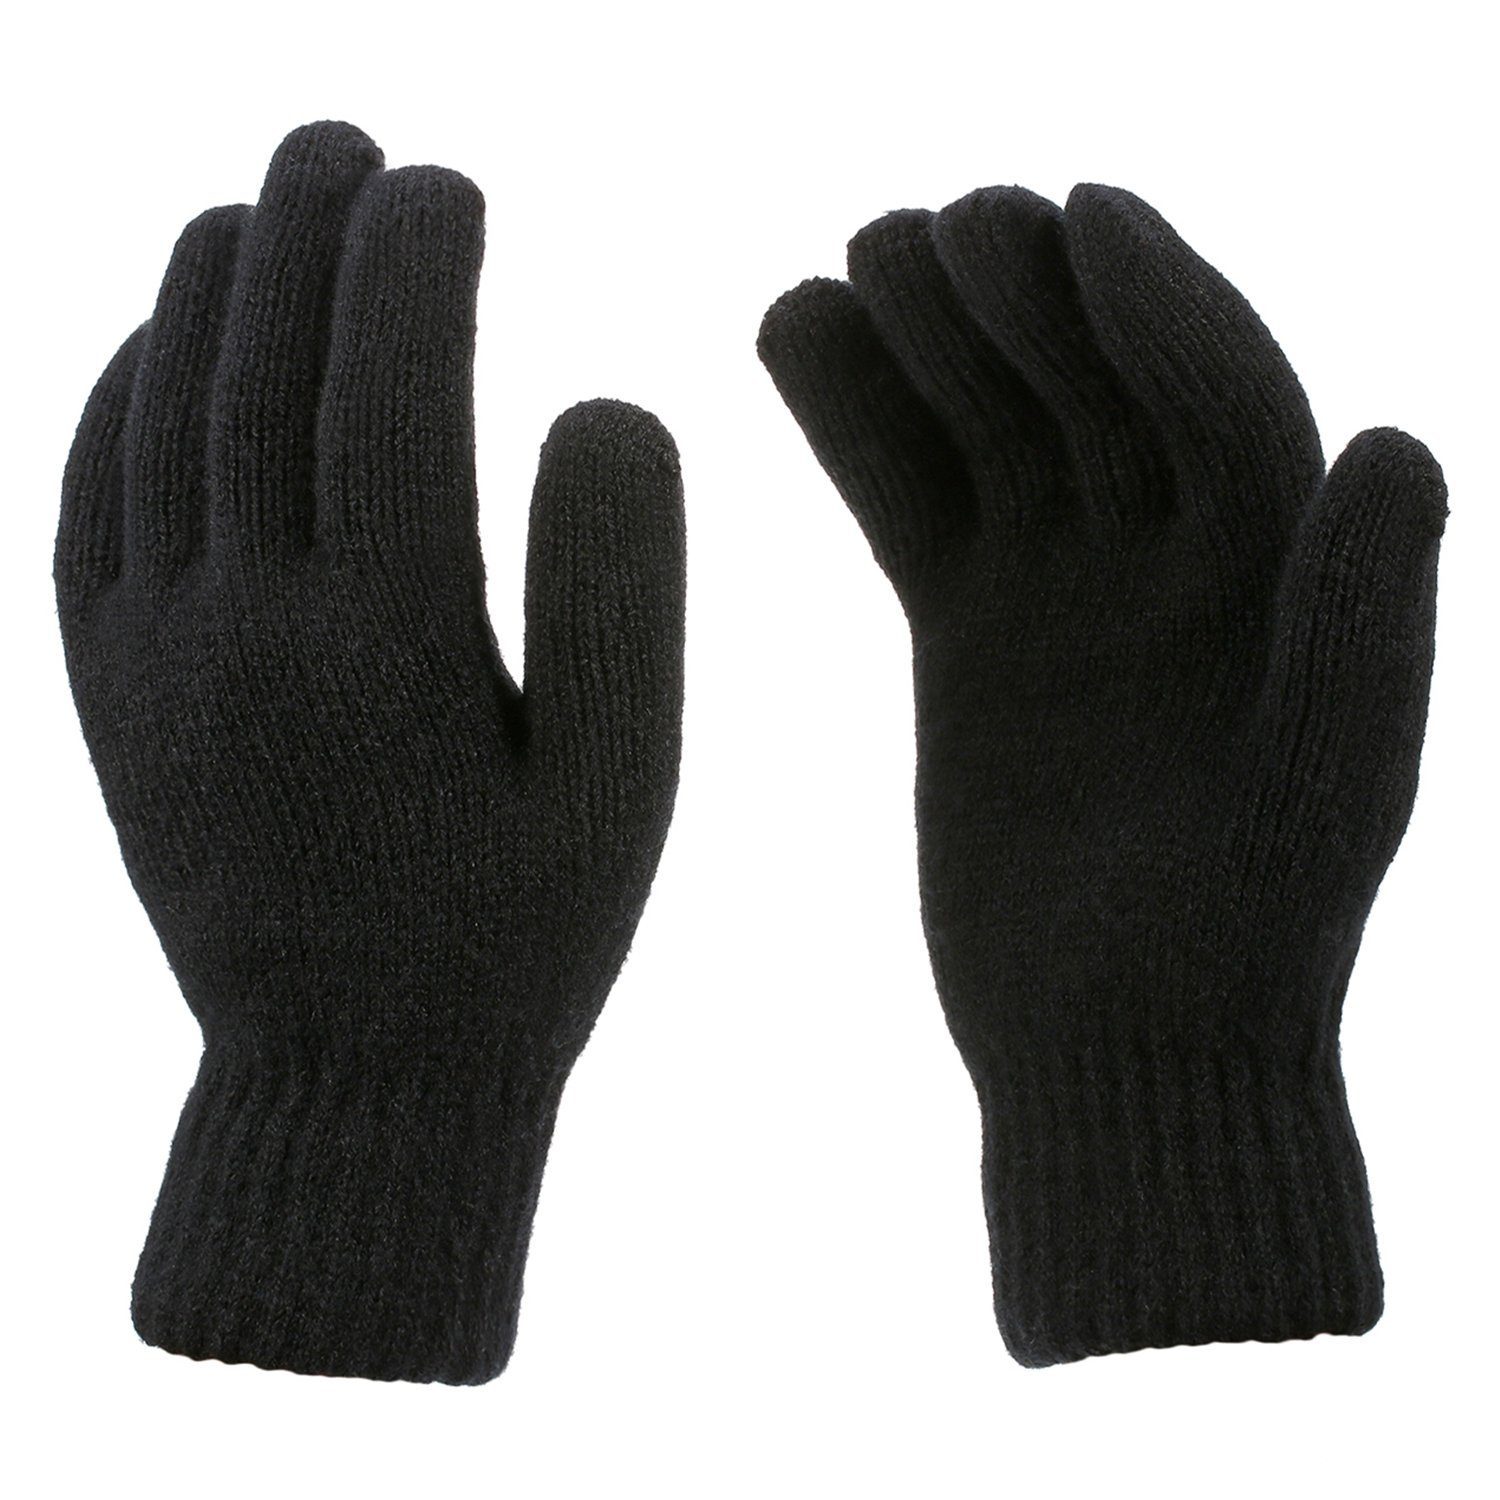 2 Pairs Thermal Winter Gloves Unisex Stretchy Plush Lining Thick Knitted Gloves for Men Women, Black